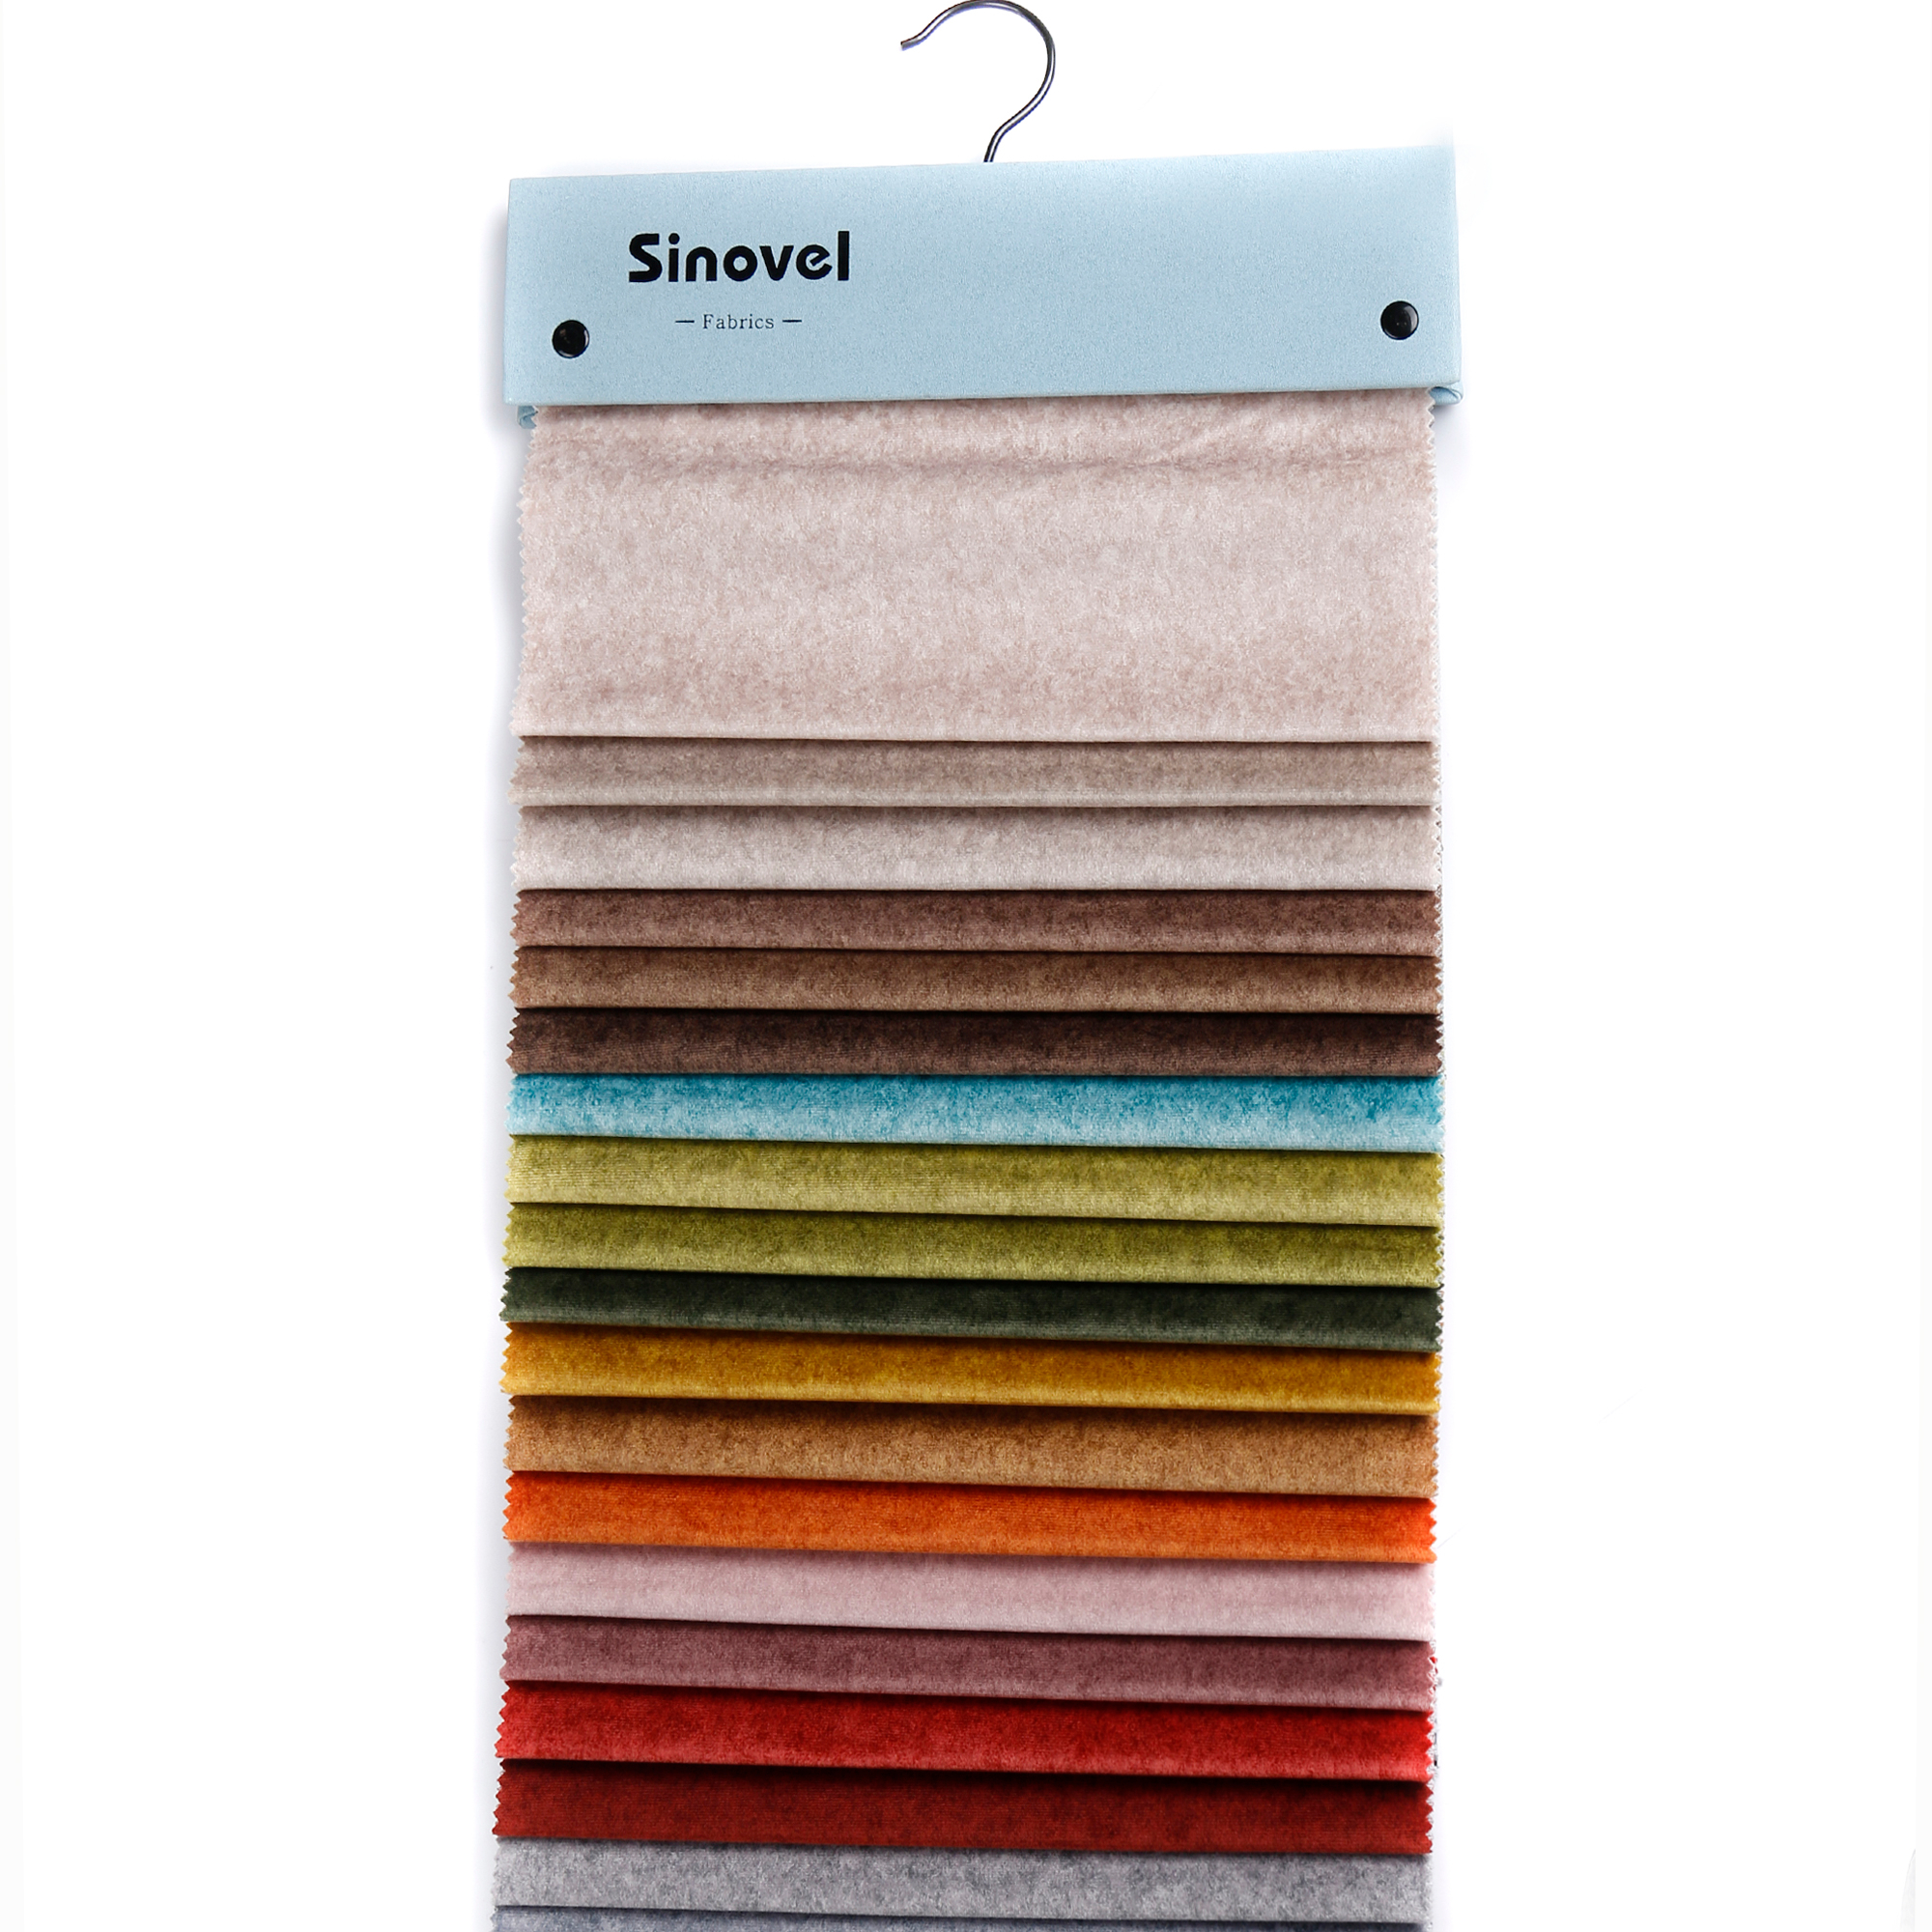 Home Material Polyester Knitted Tricot Printed  holland Velvet Fabric For Furniture sofa cover upholstery textile